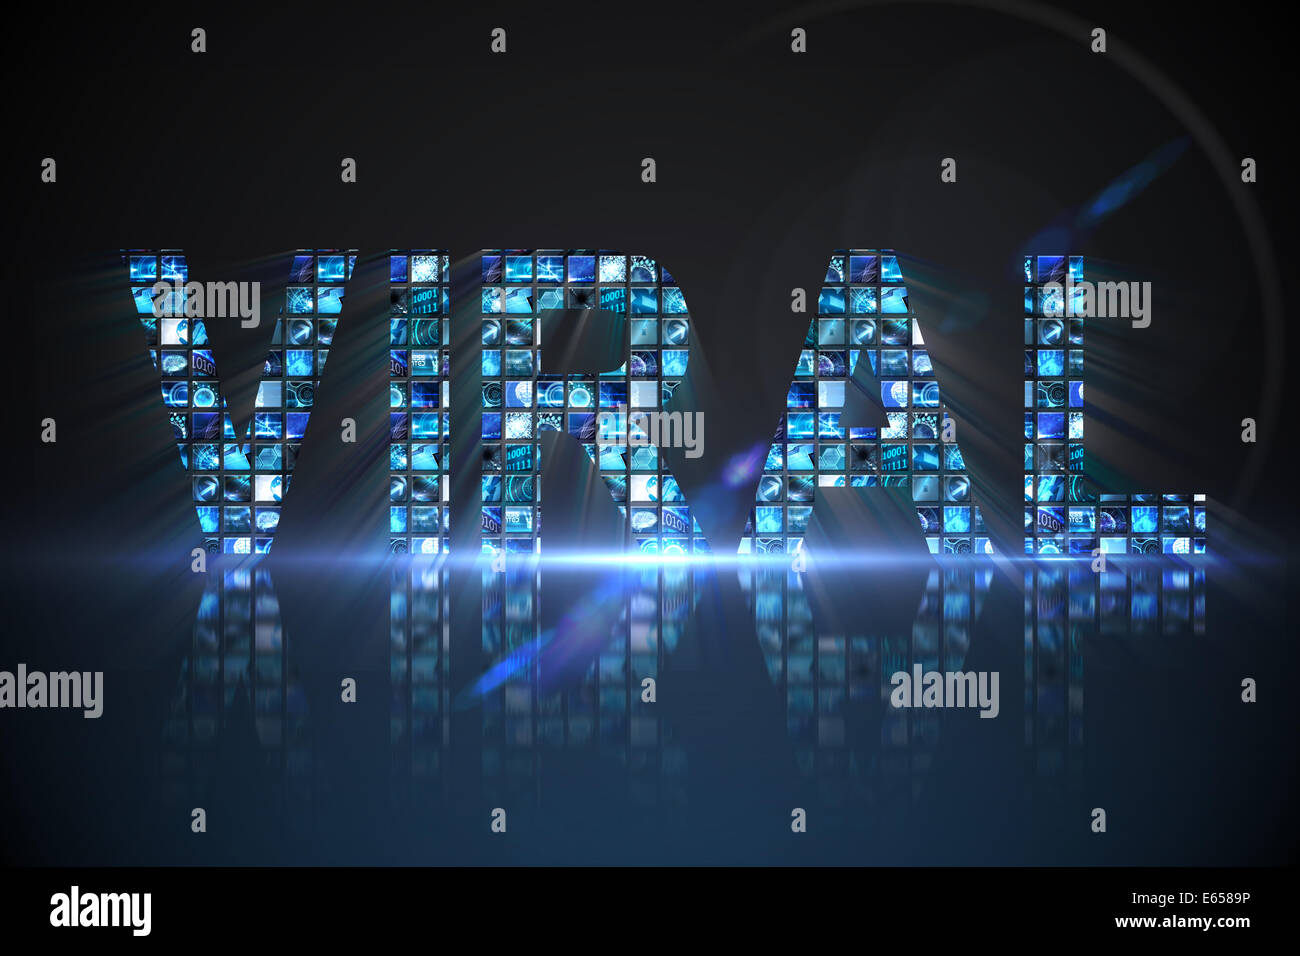 Viral made of digital screens in blue - Stock Image